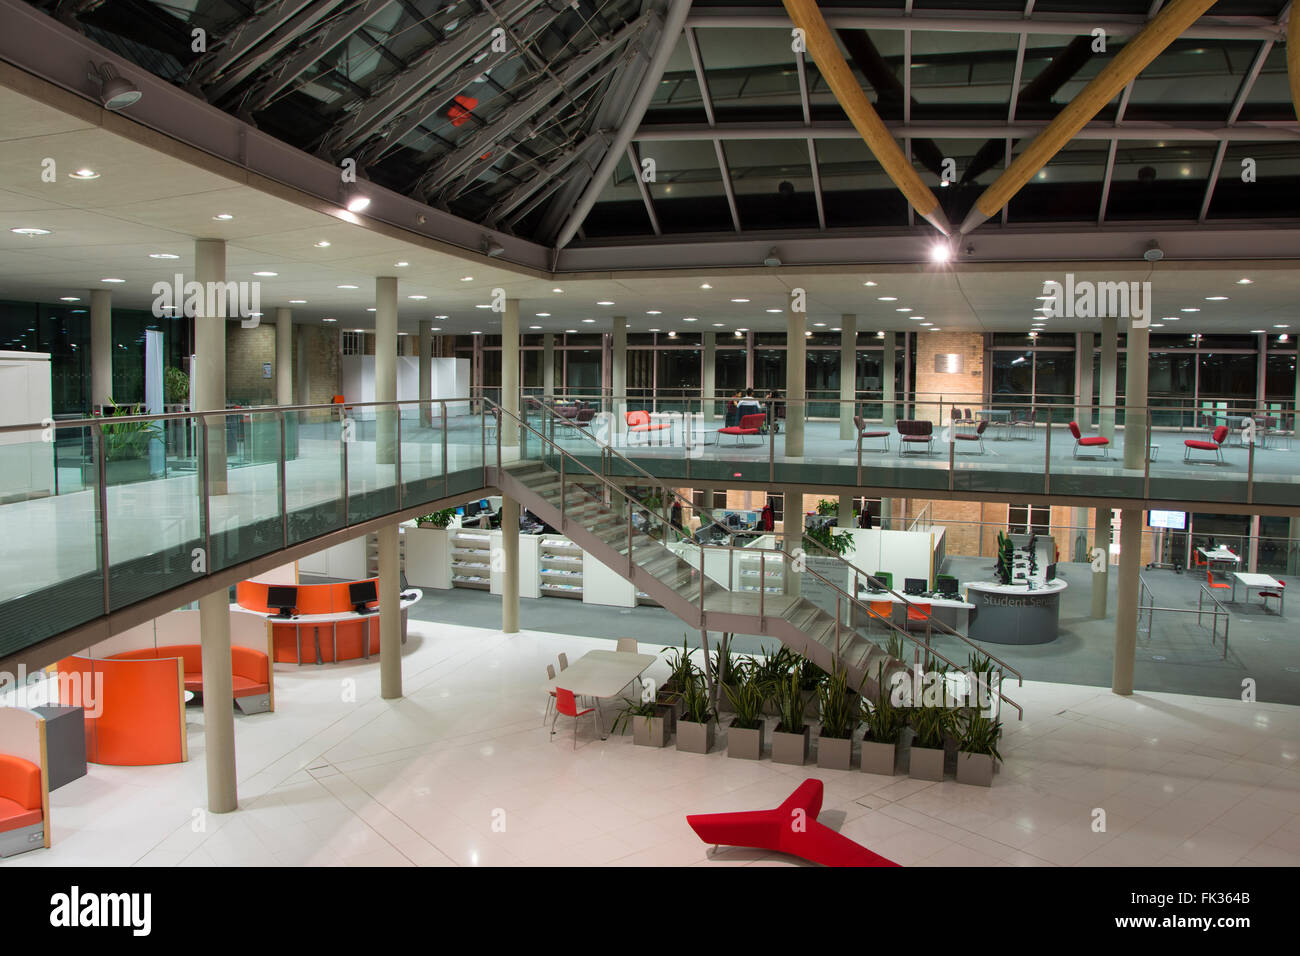 Inside The Newton Building At Night Nottingham Trent University Goldsmith Street England UK